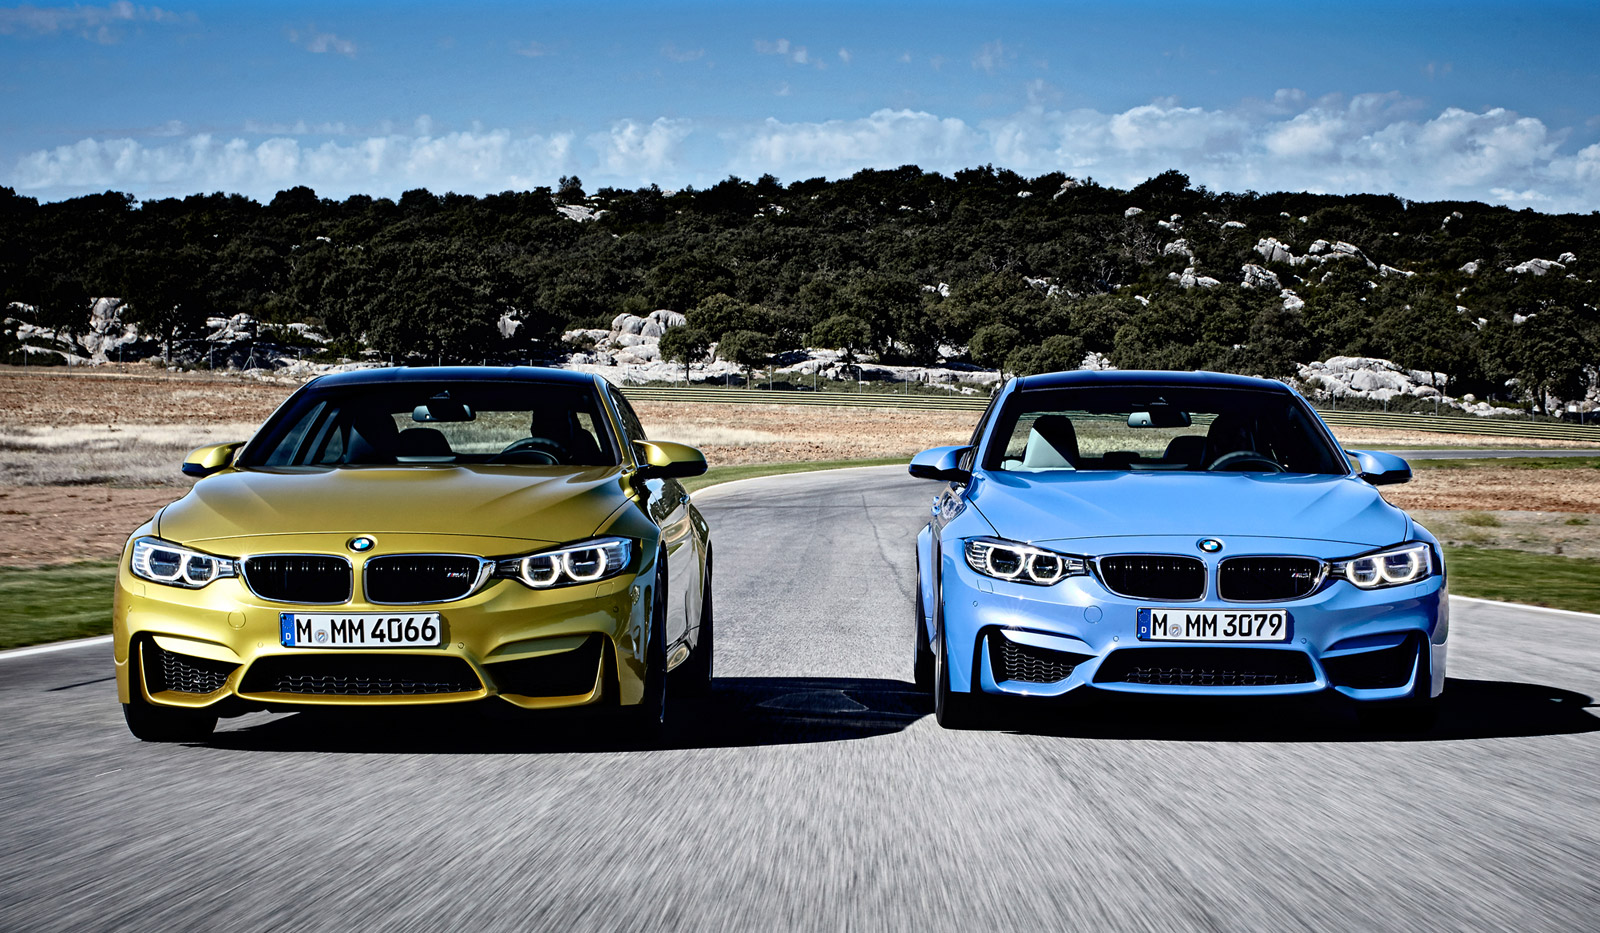 2015 bmw m3 priced from 62 925 2015 m4 from 65 125. Black Bedroom Furniture Sets. Home Design Ideas